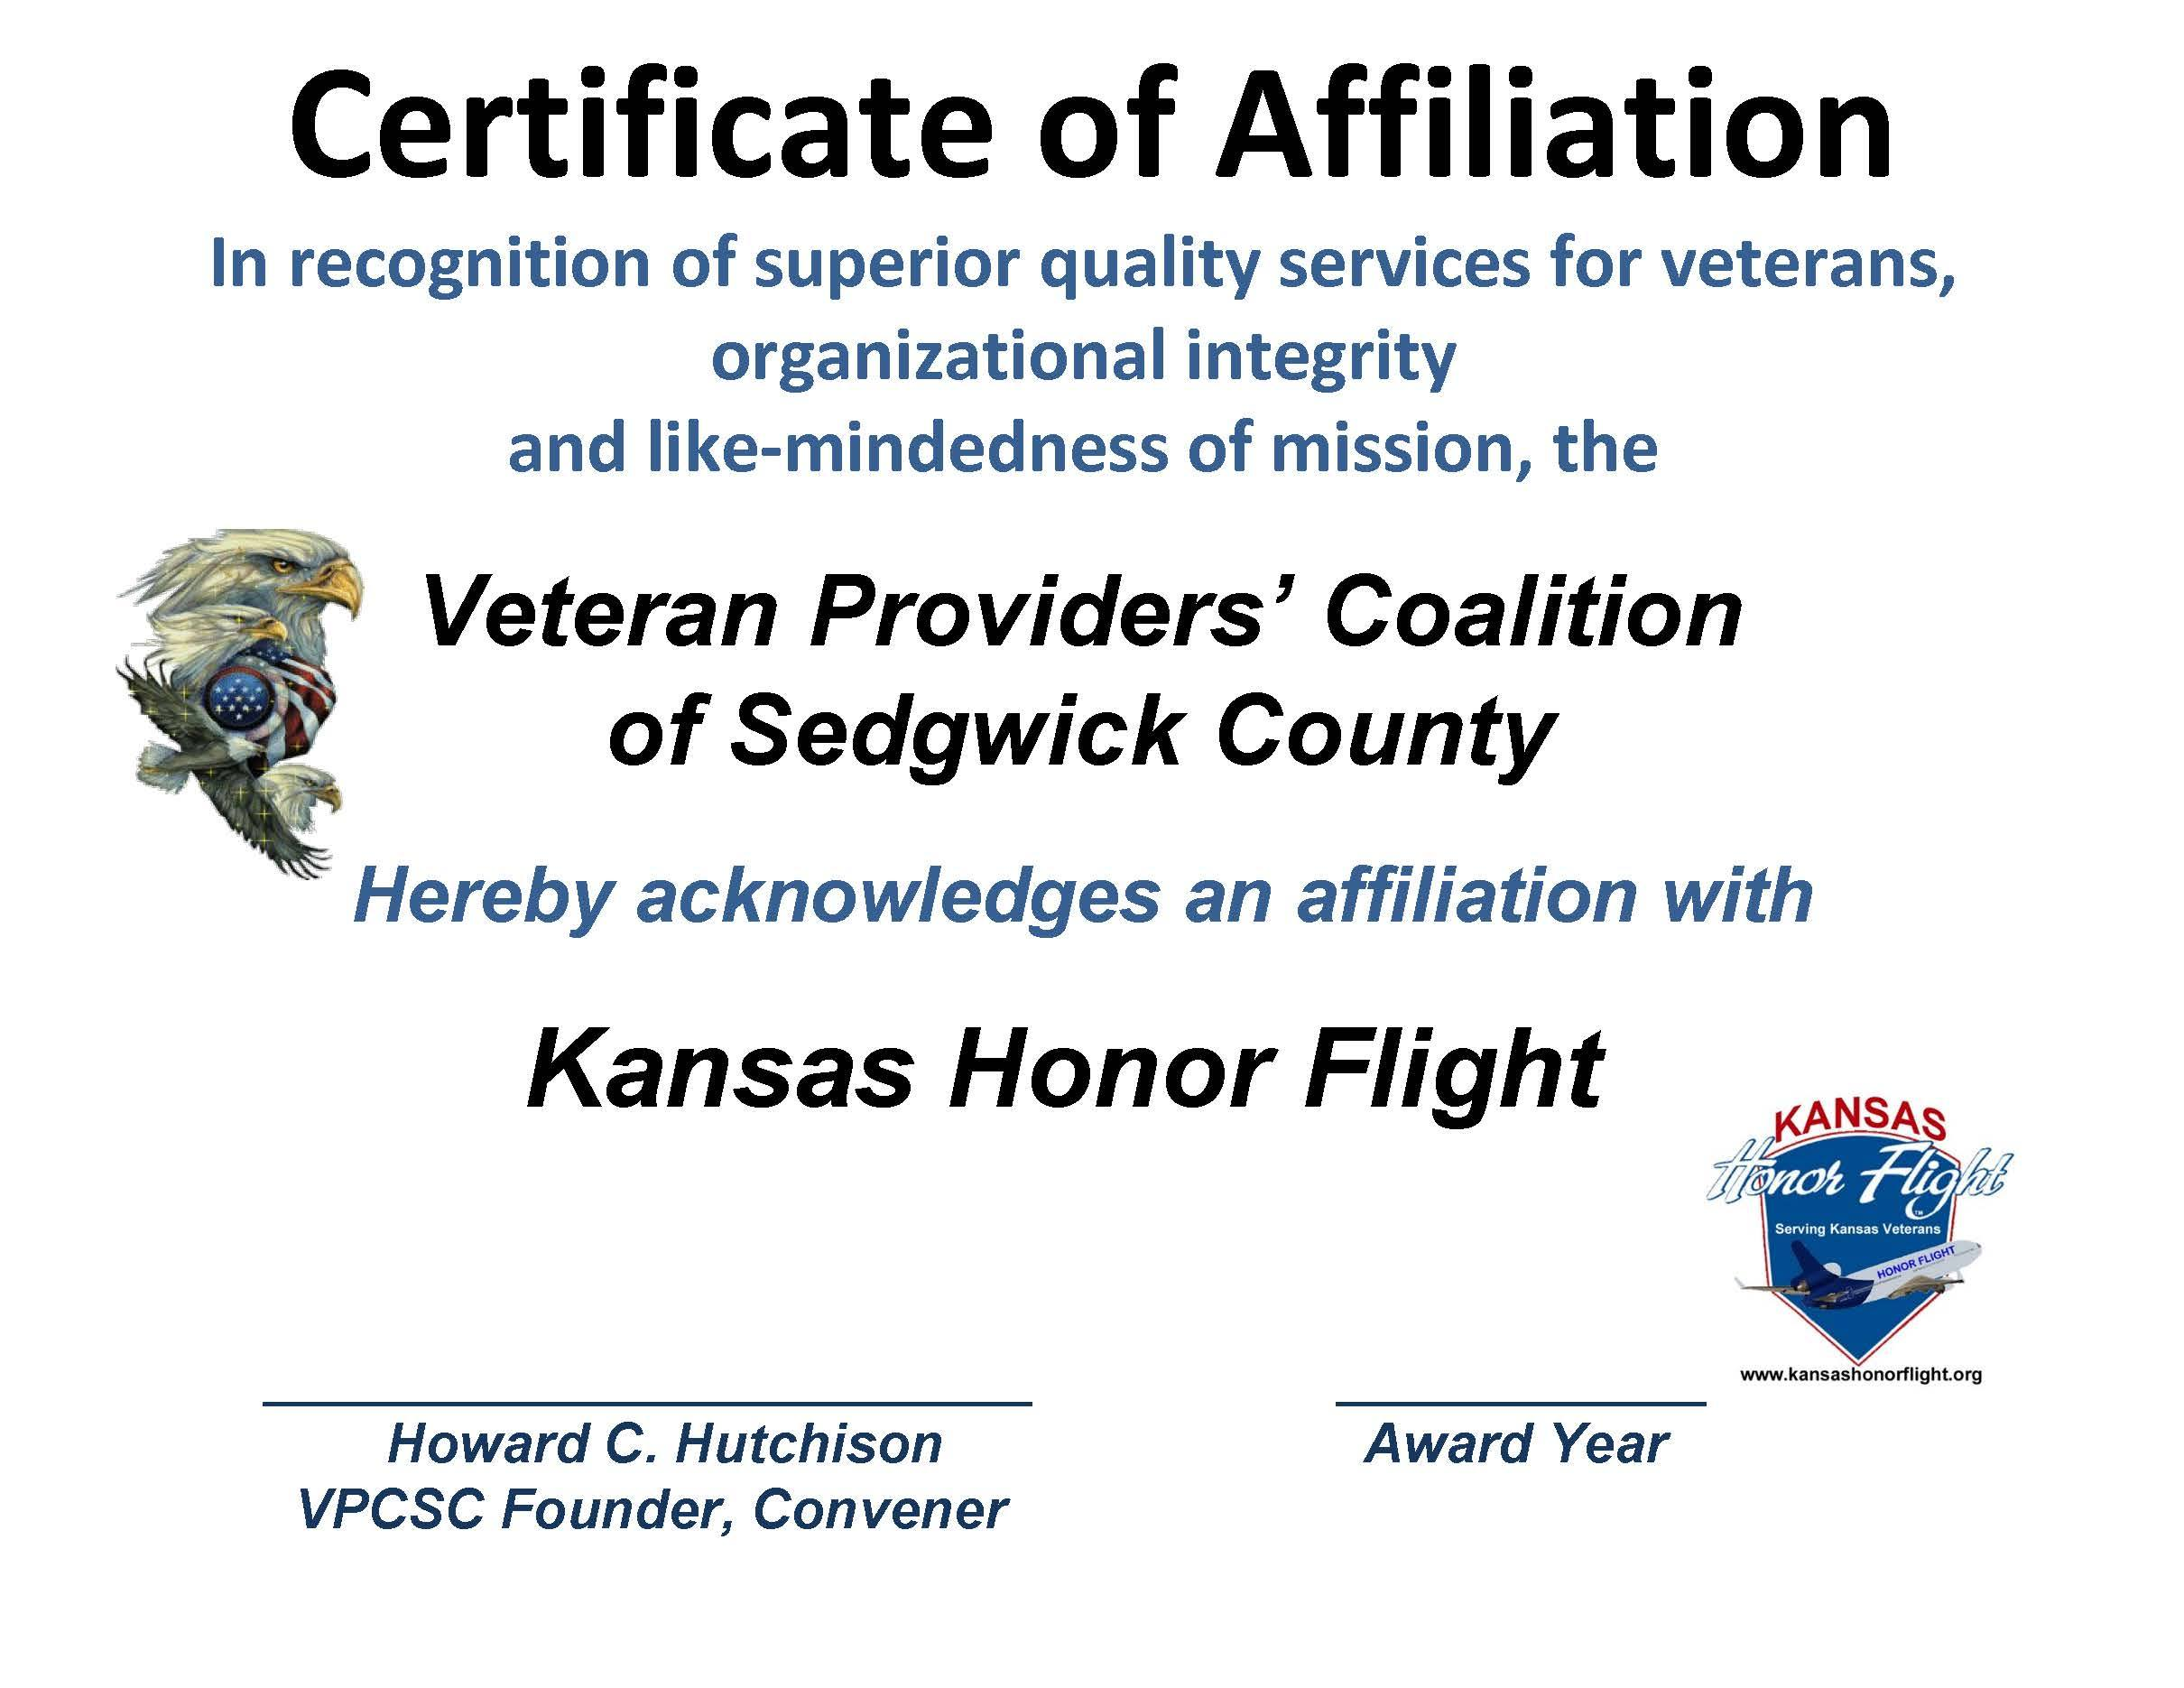 AFFILIATION CERT. KS HONOR FLIGHT 2015